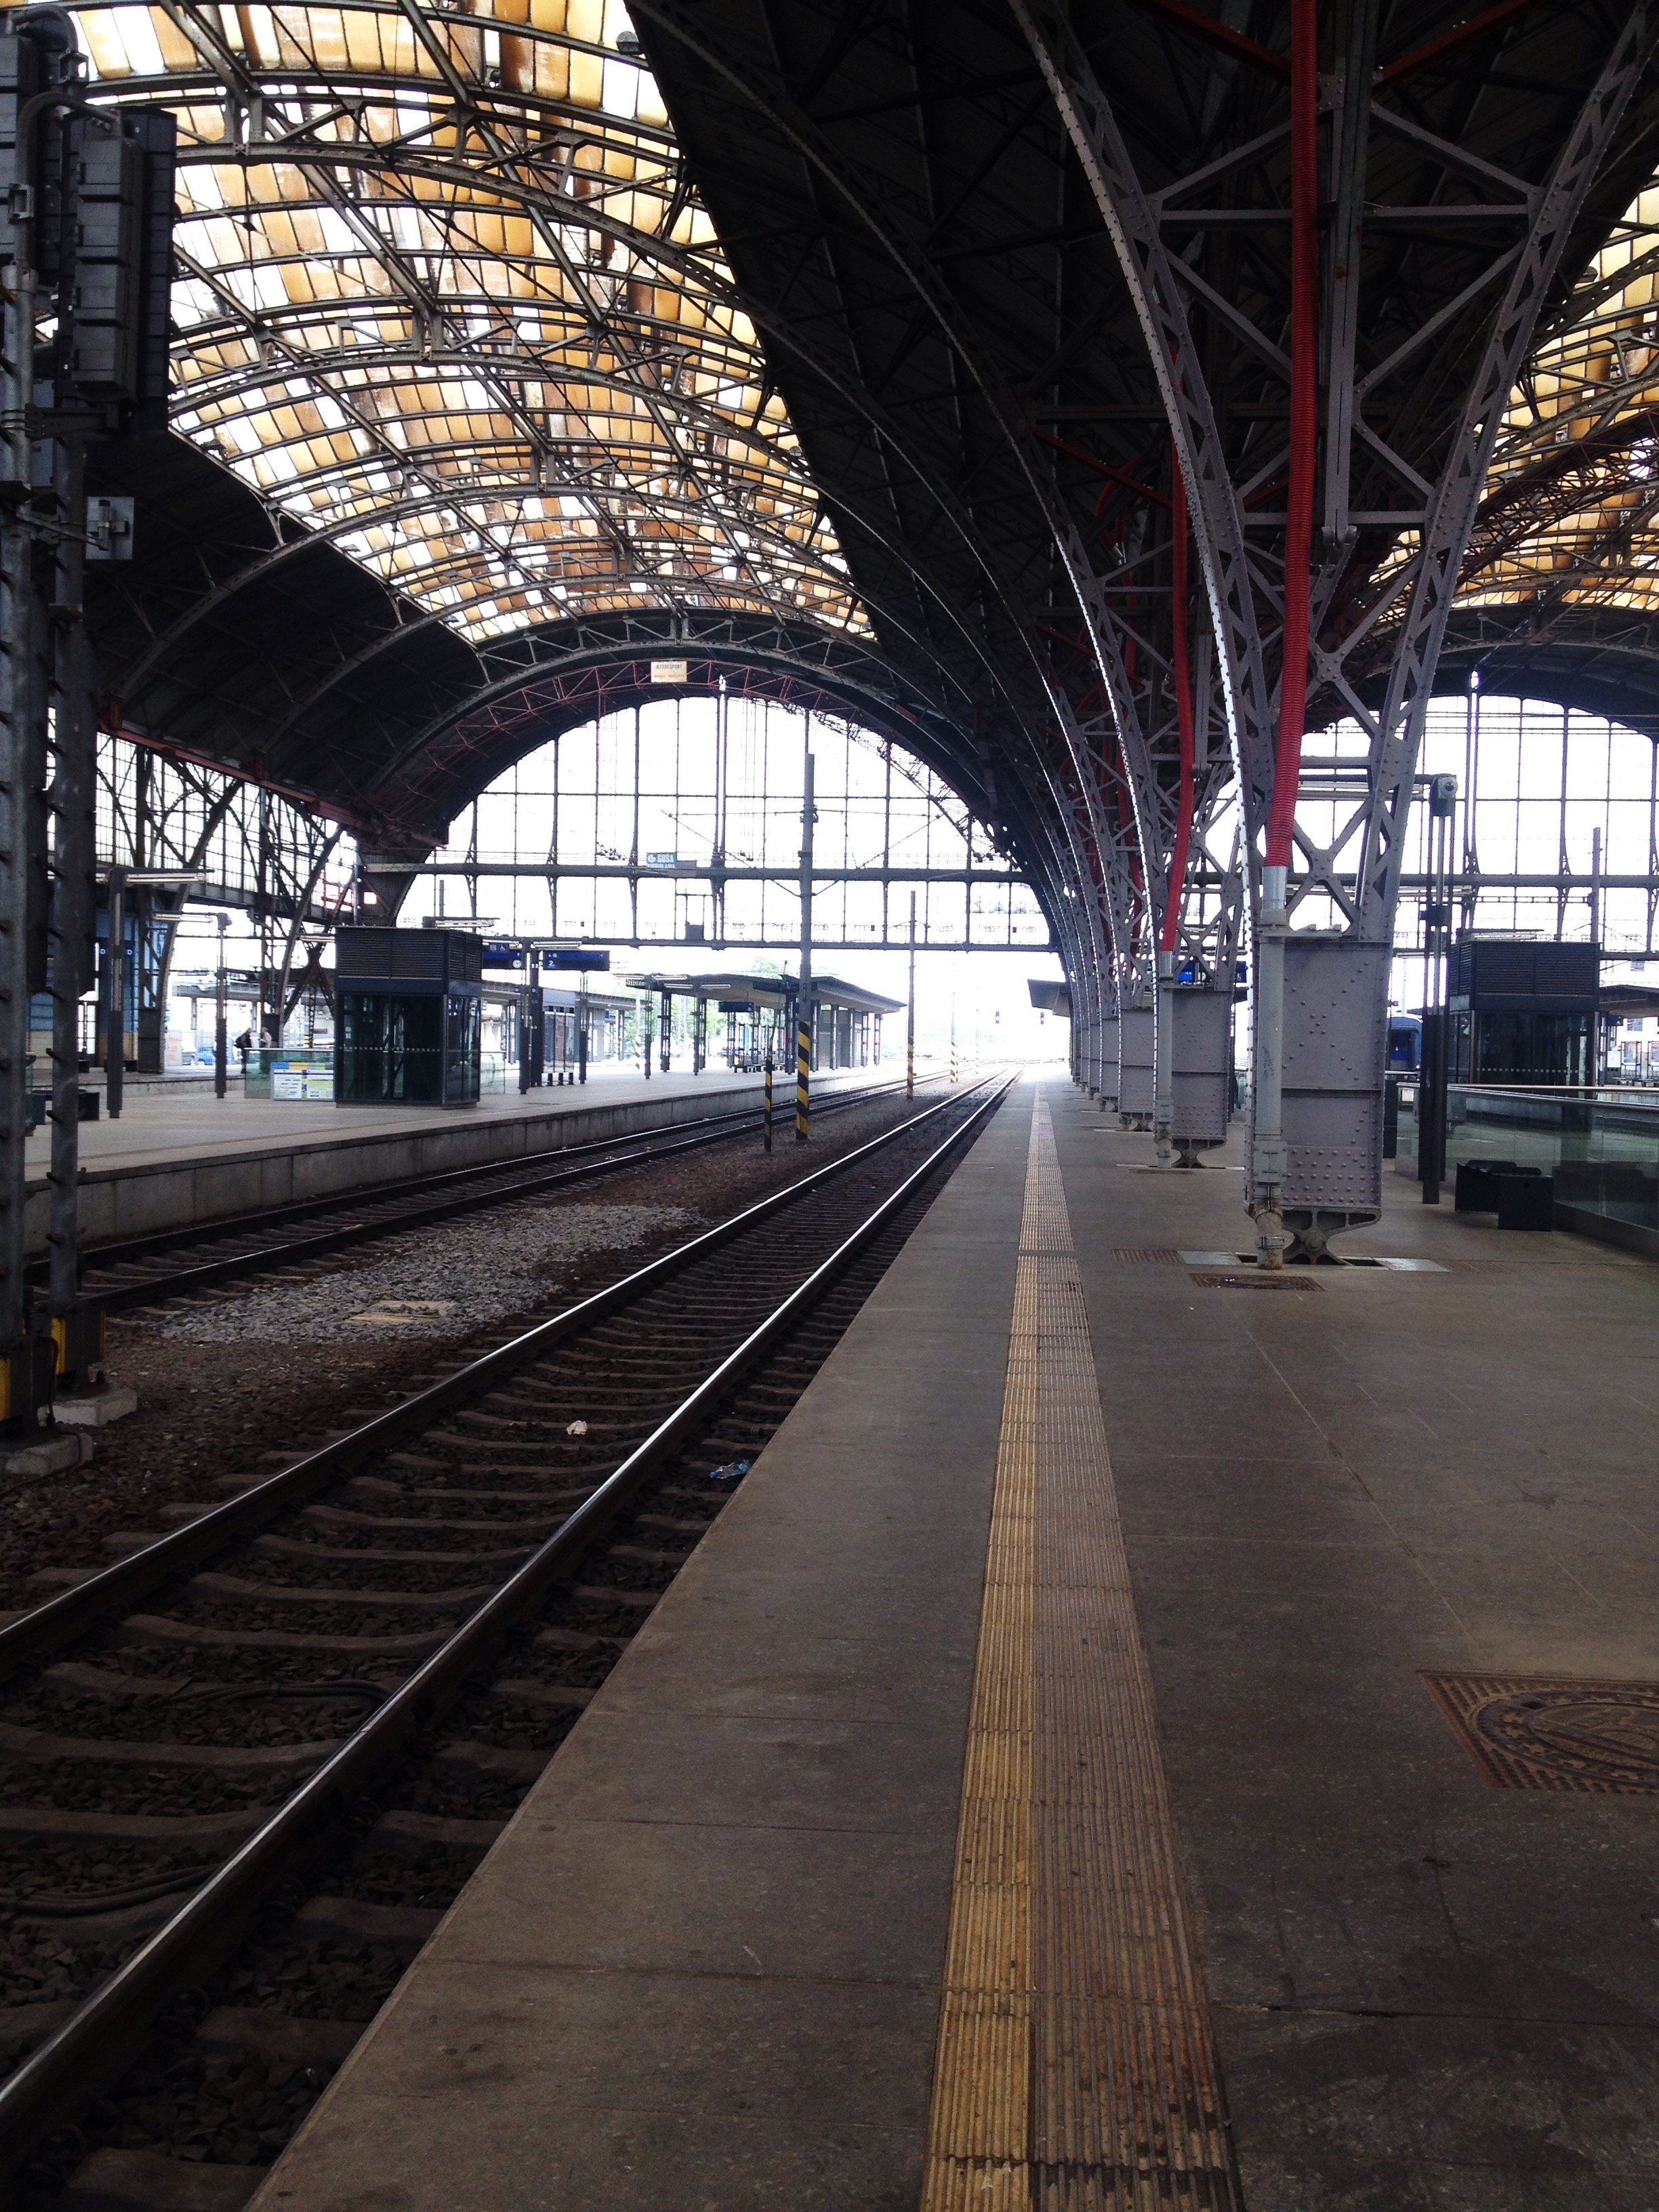 Arrival after a 7-hour train trip from Prague